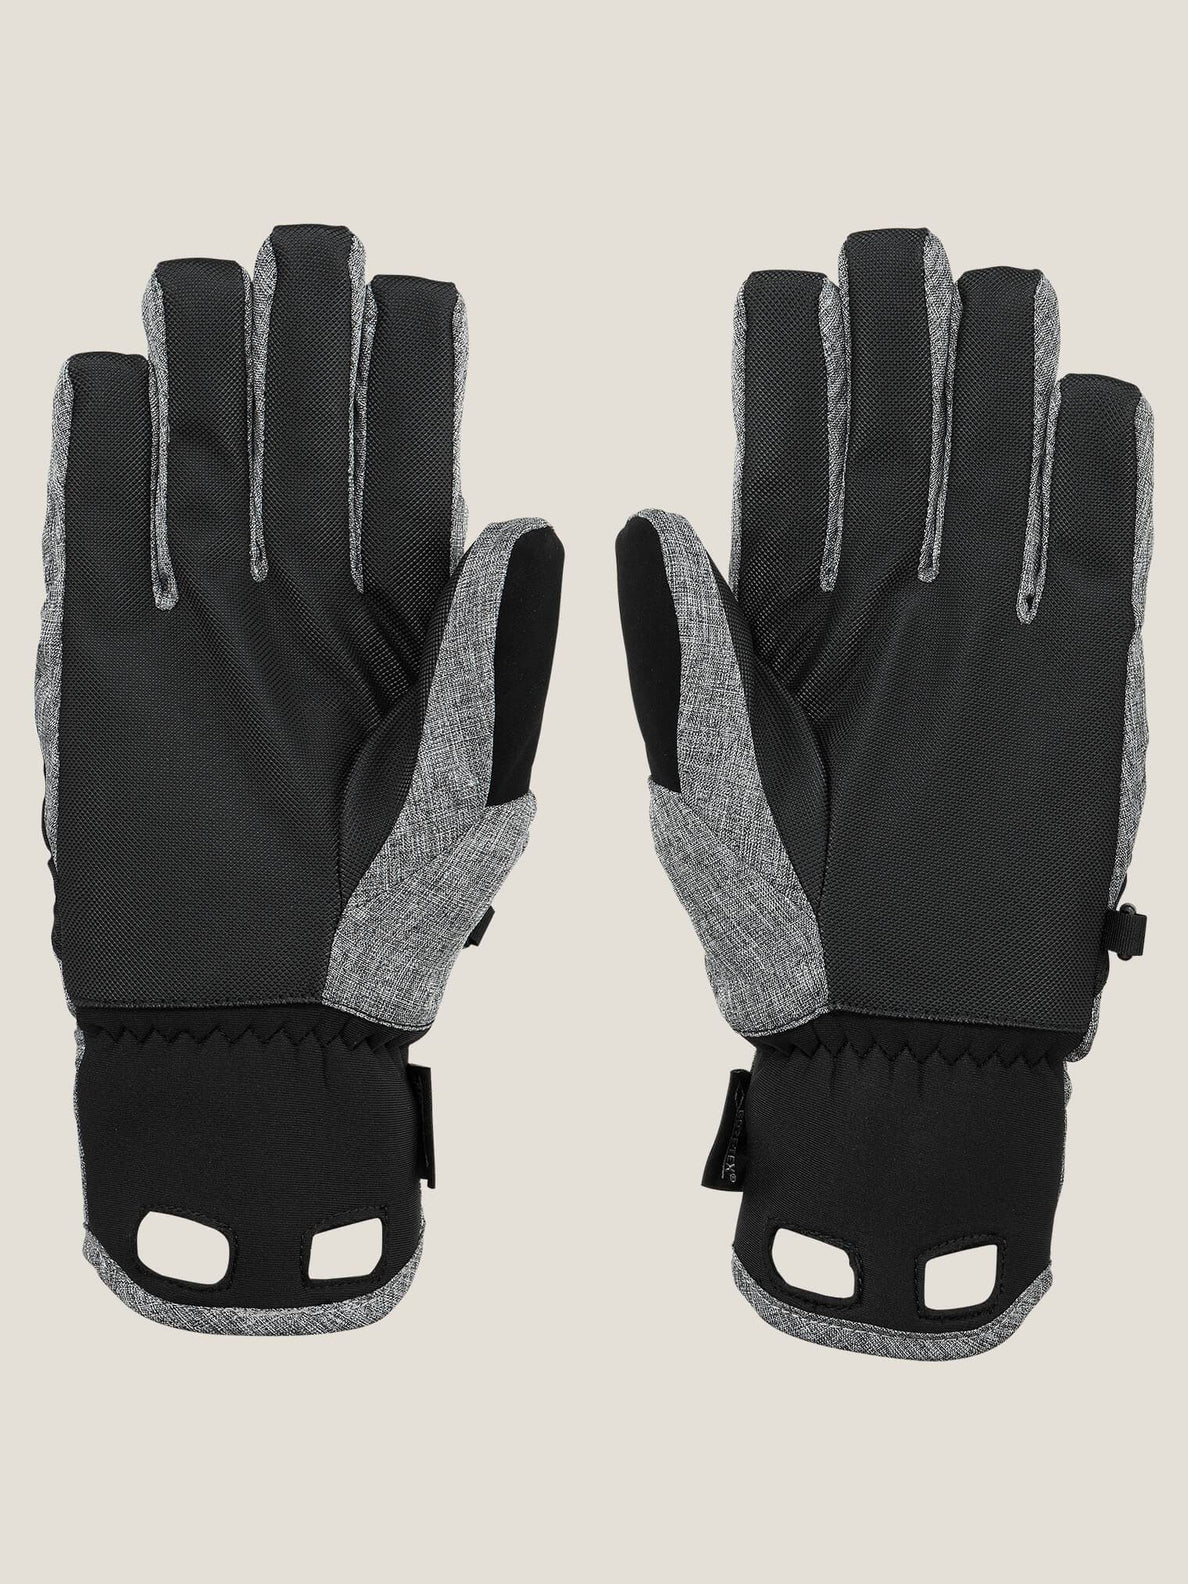 Cp2 Gore-tex® Glove In Heather Grey, Back View